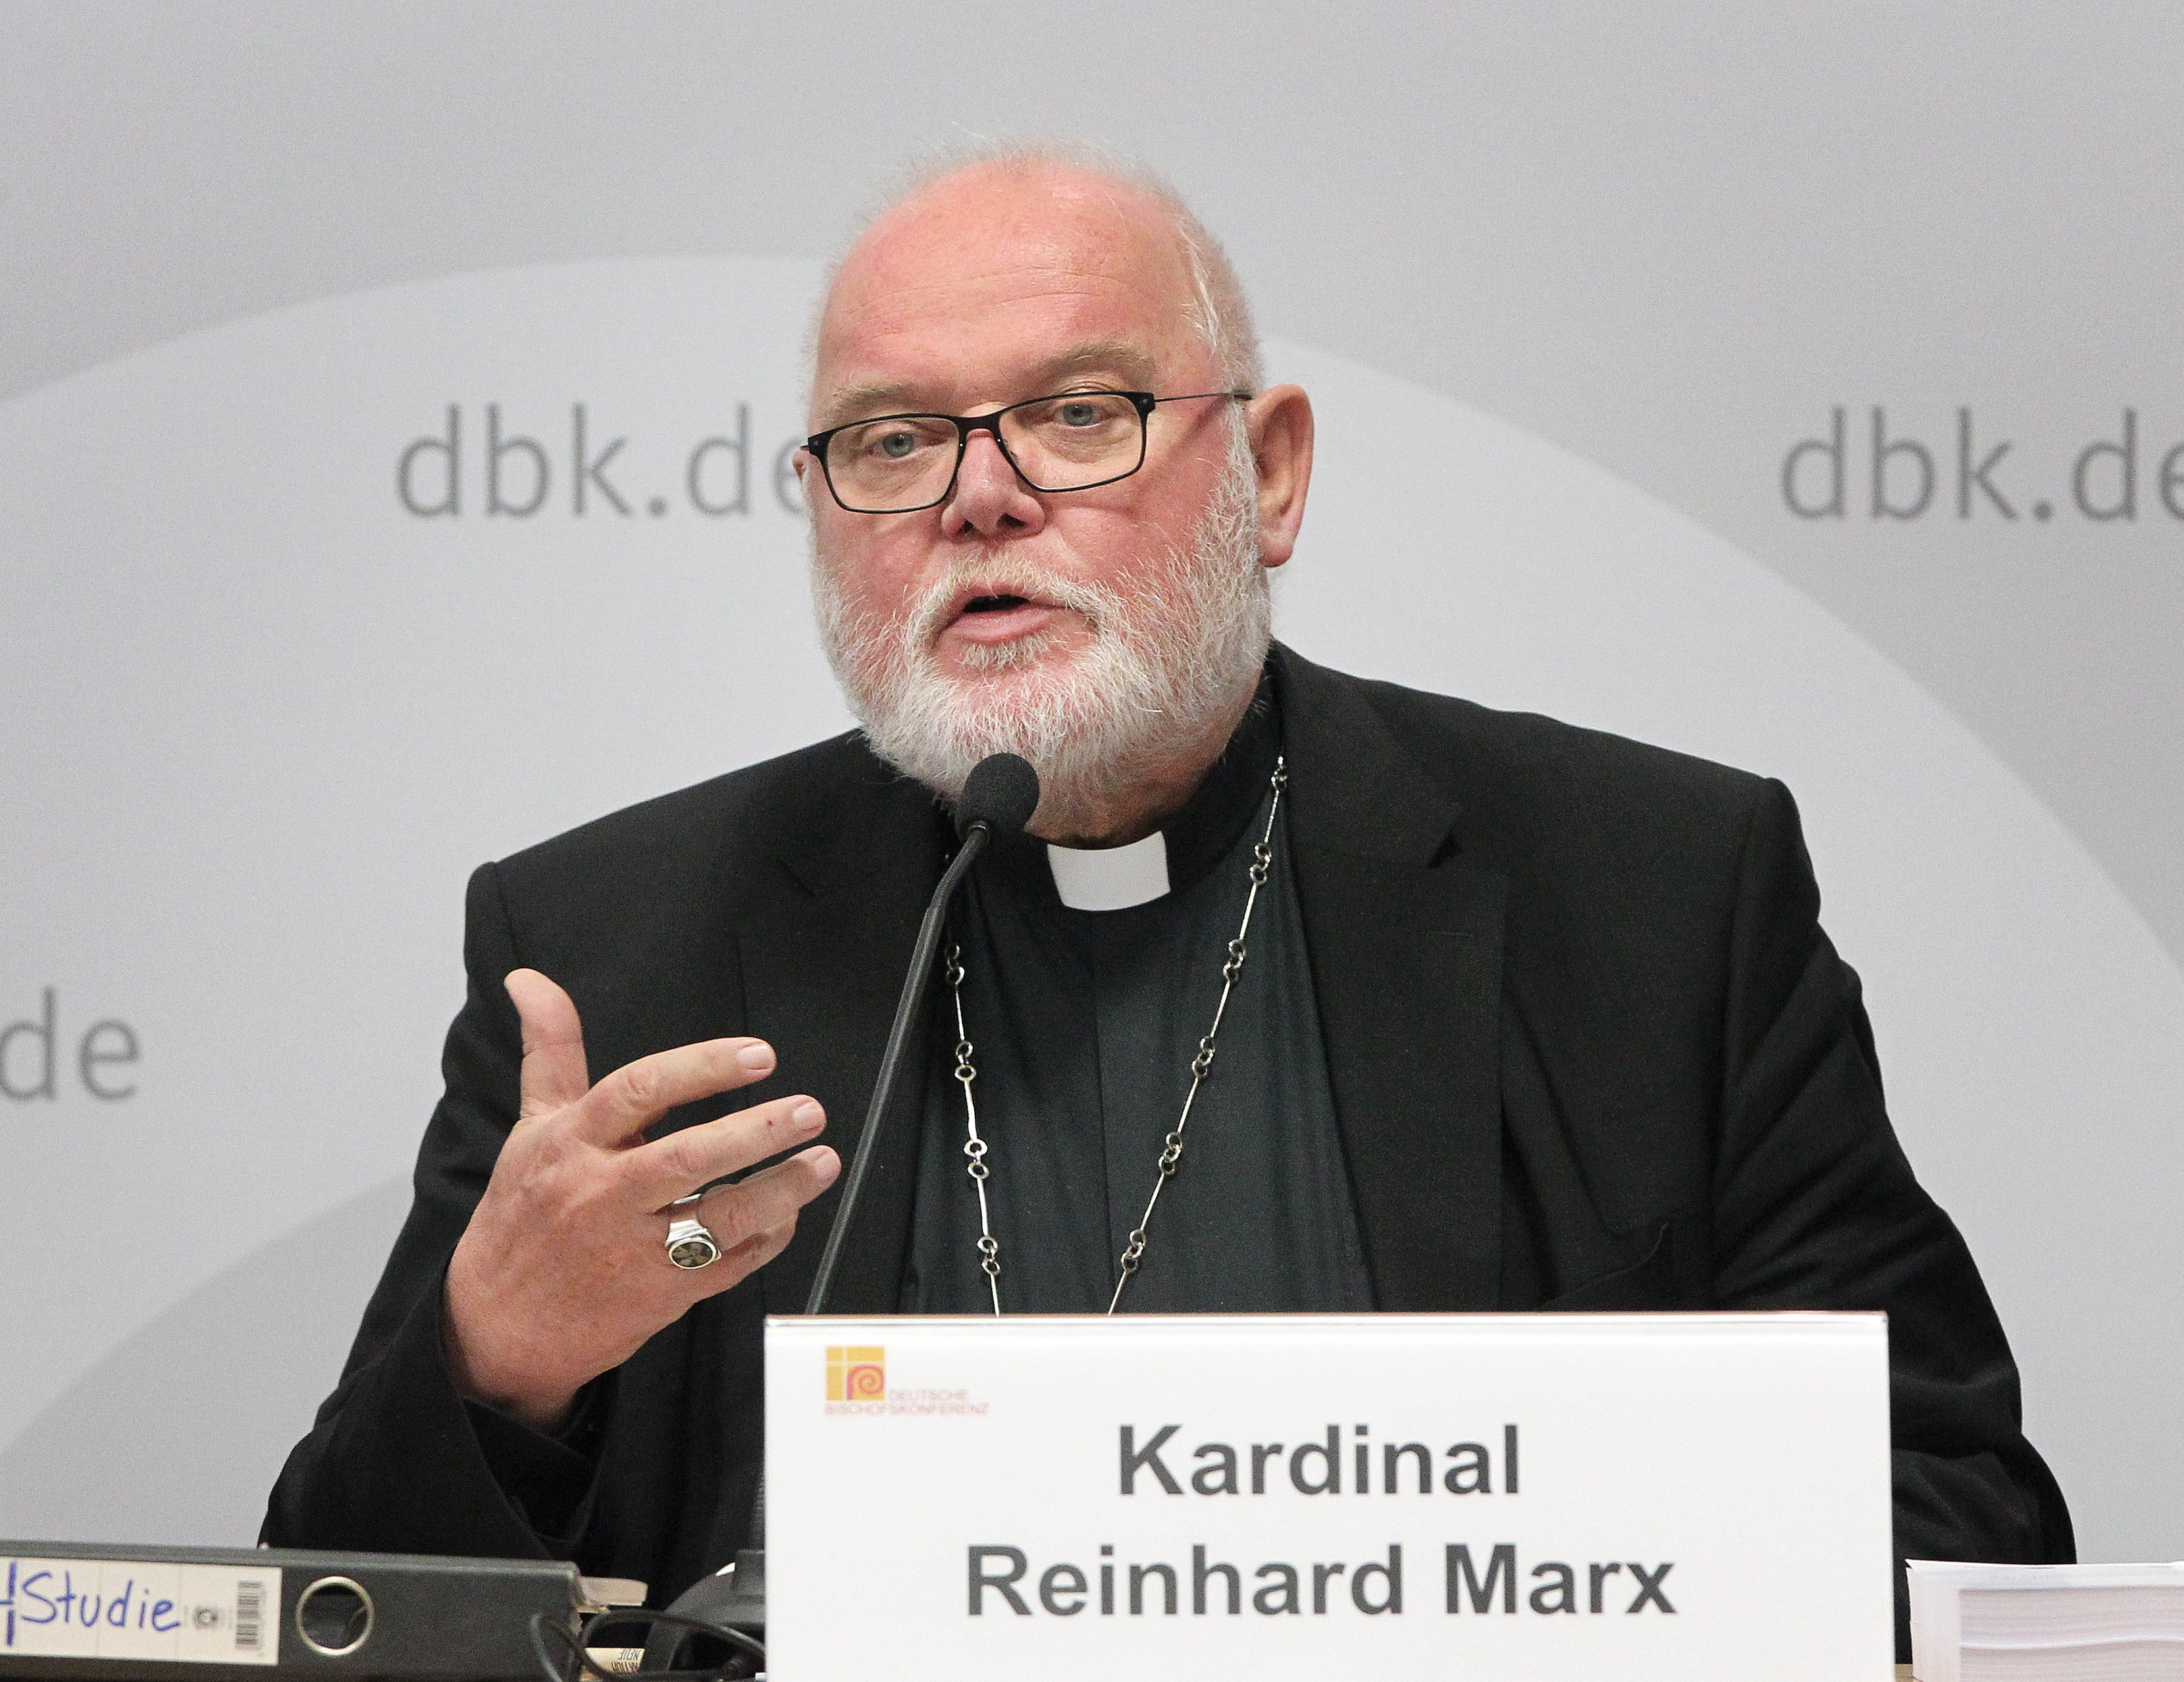 """Cardinal Reinhard Marx, Archbishop of Munich and Chairman of the German Bishops' Conference and Trier Bishop gives a press conference to present the results of the study on """"Sexual Abuse of Minors by Catholic Priests, Deacons and Male Religious"""" (MHG study) on September 25, 2018 in Fulda, western Germany. (DANIEL ROLAND/AFP/Getty Images)"""